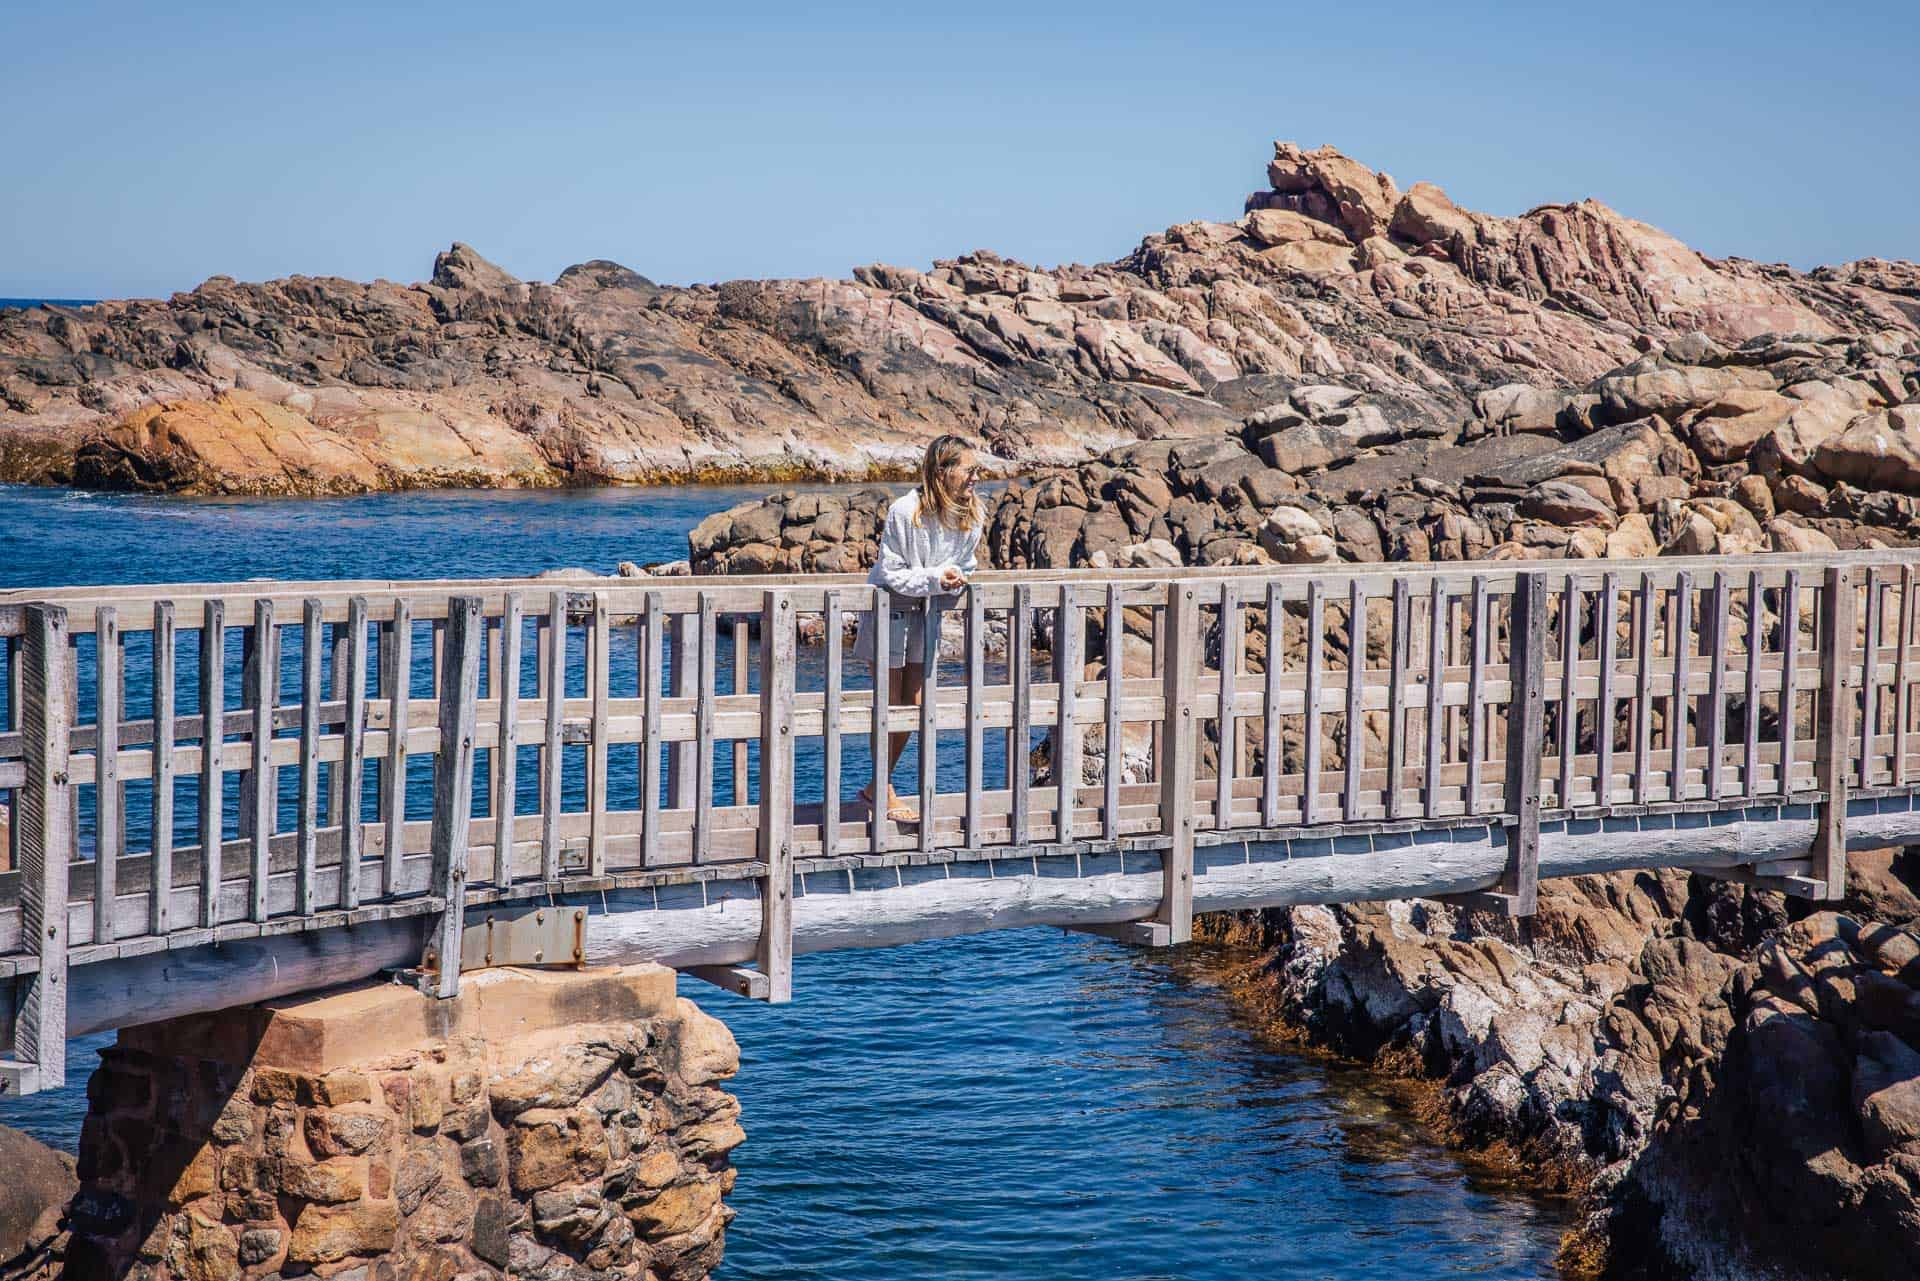 things to do in margaret river, what to do in margaret river, best things to do in margaret river, things to do margaret river, canal rocks